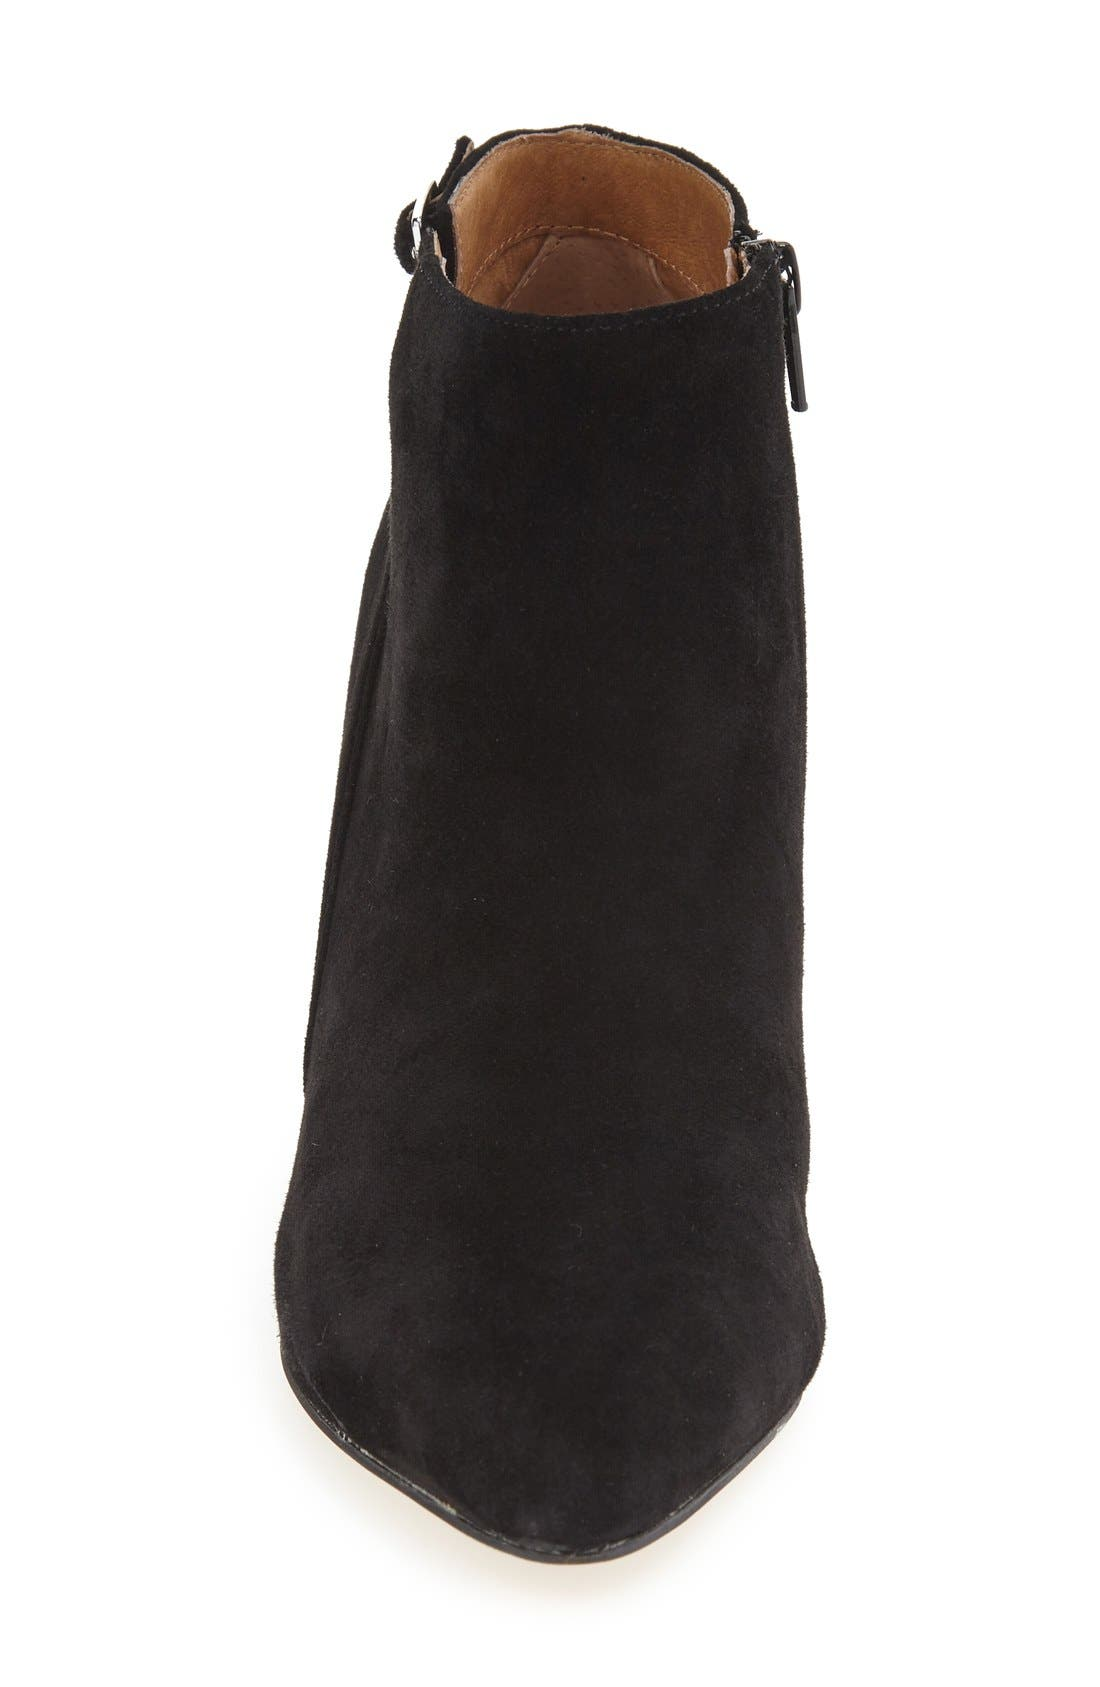 'Roster' Pointy Toe Bootie,                             Alternate thumbnail 3, color,                             Black Suede